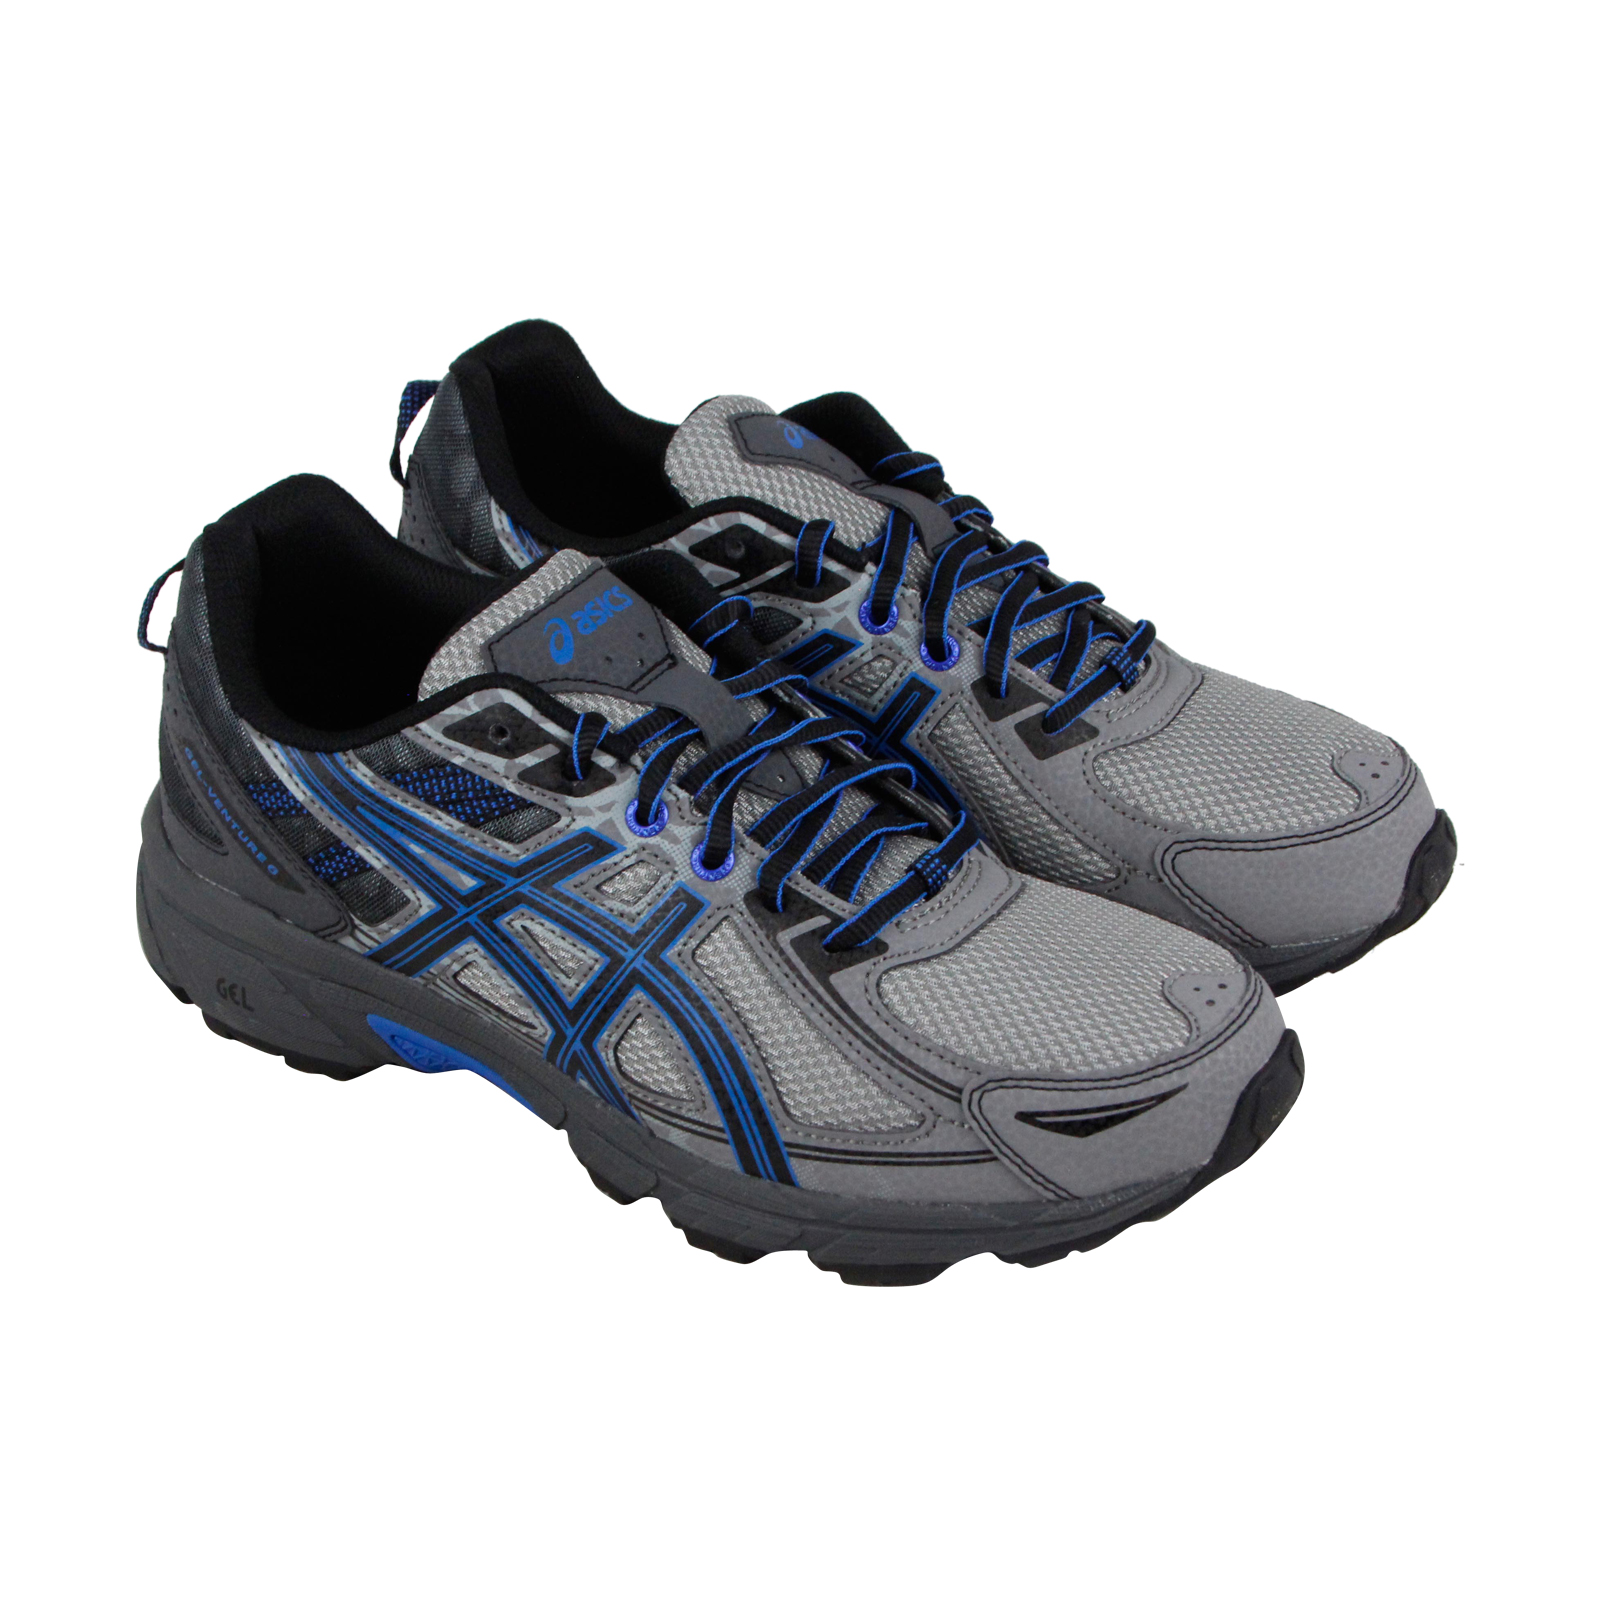 Asics Athletic Gel Venture 6 Damenschuhe Gray Textile Athletic Asics Lace Up Running Schuhes 921736